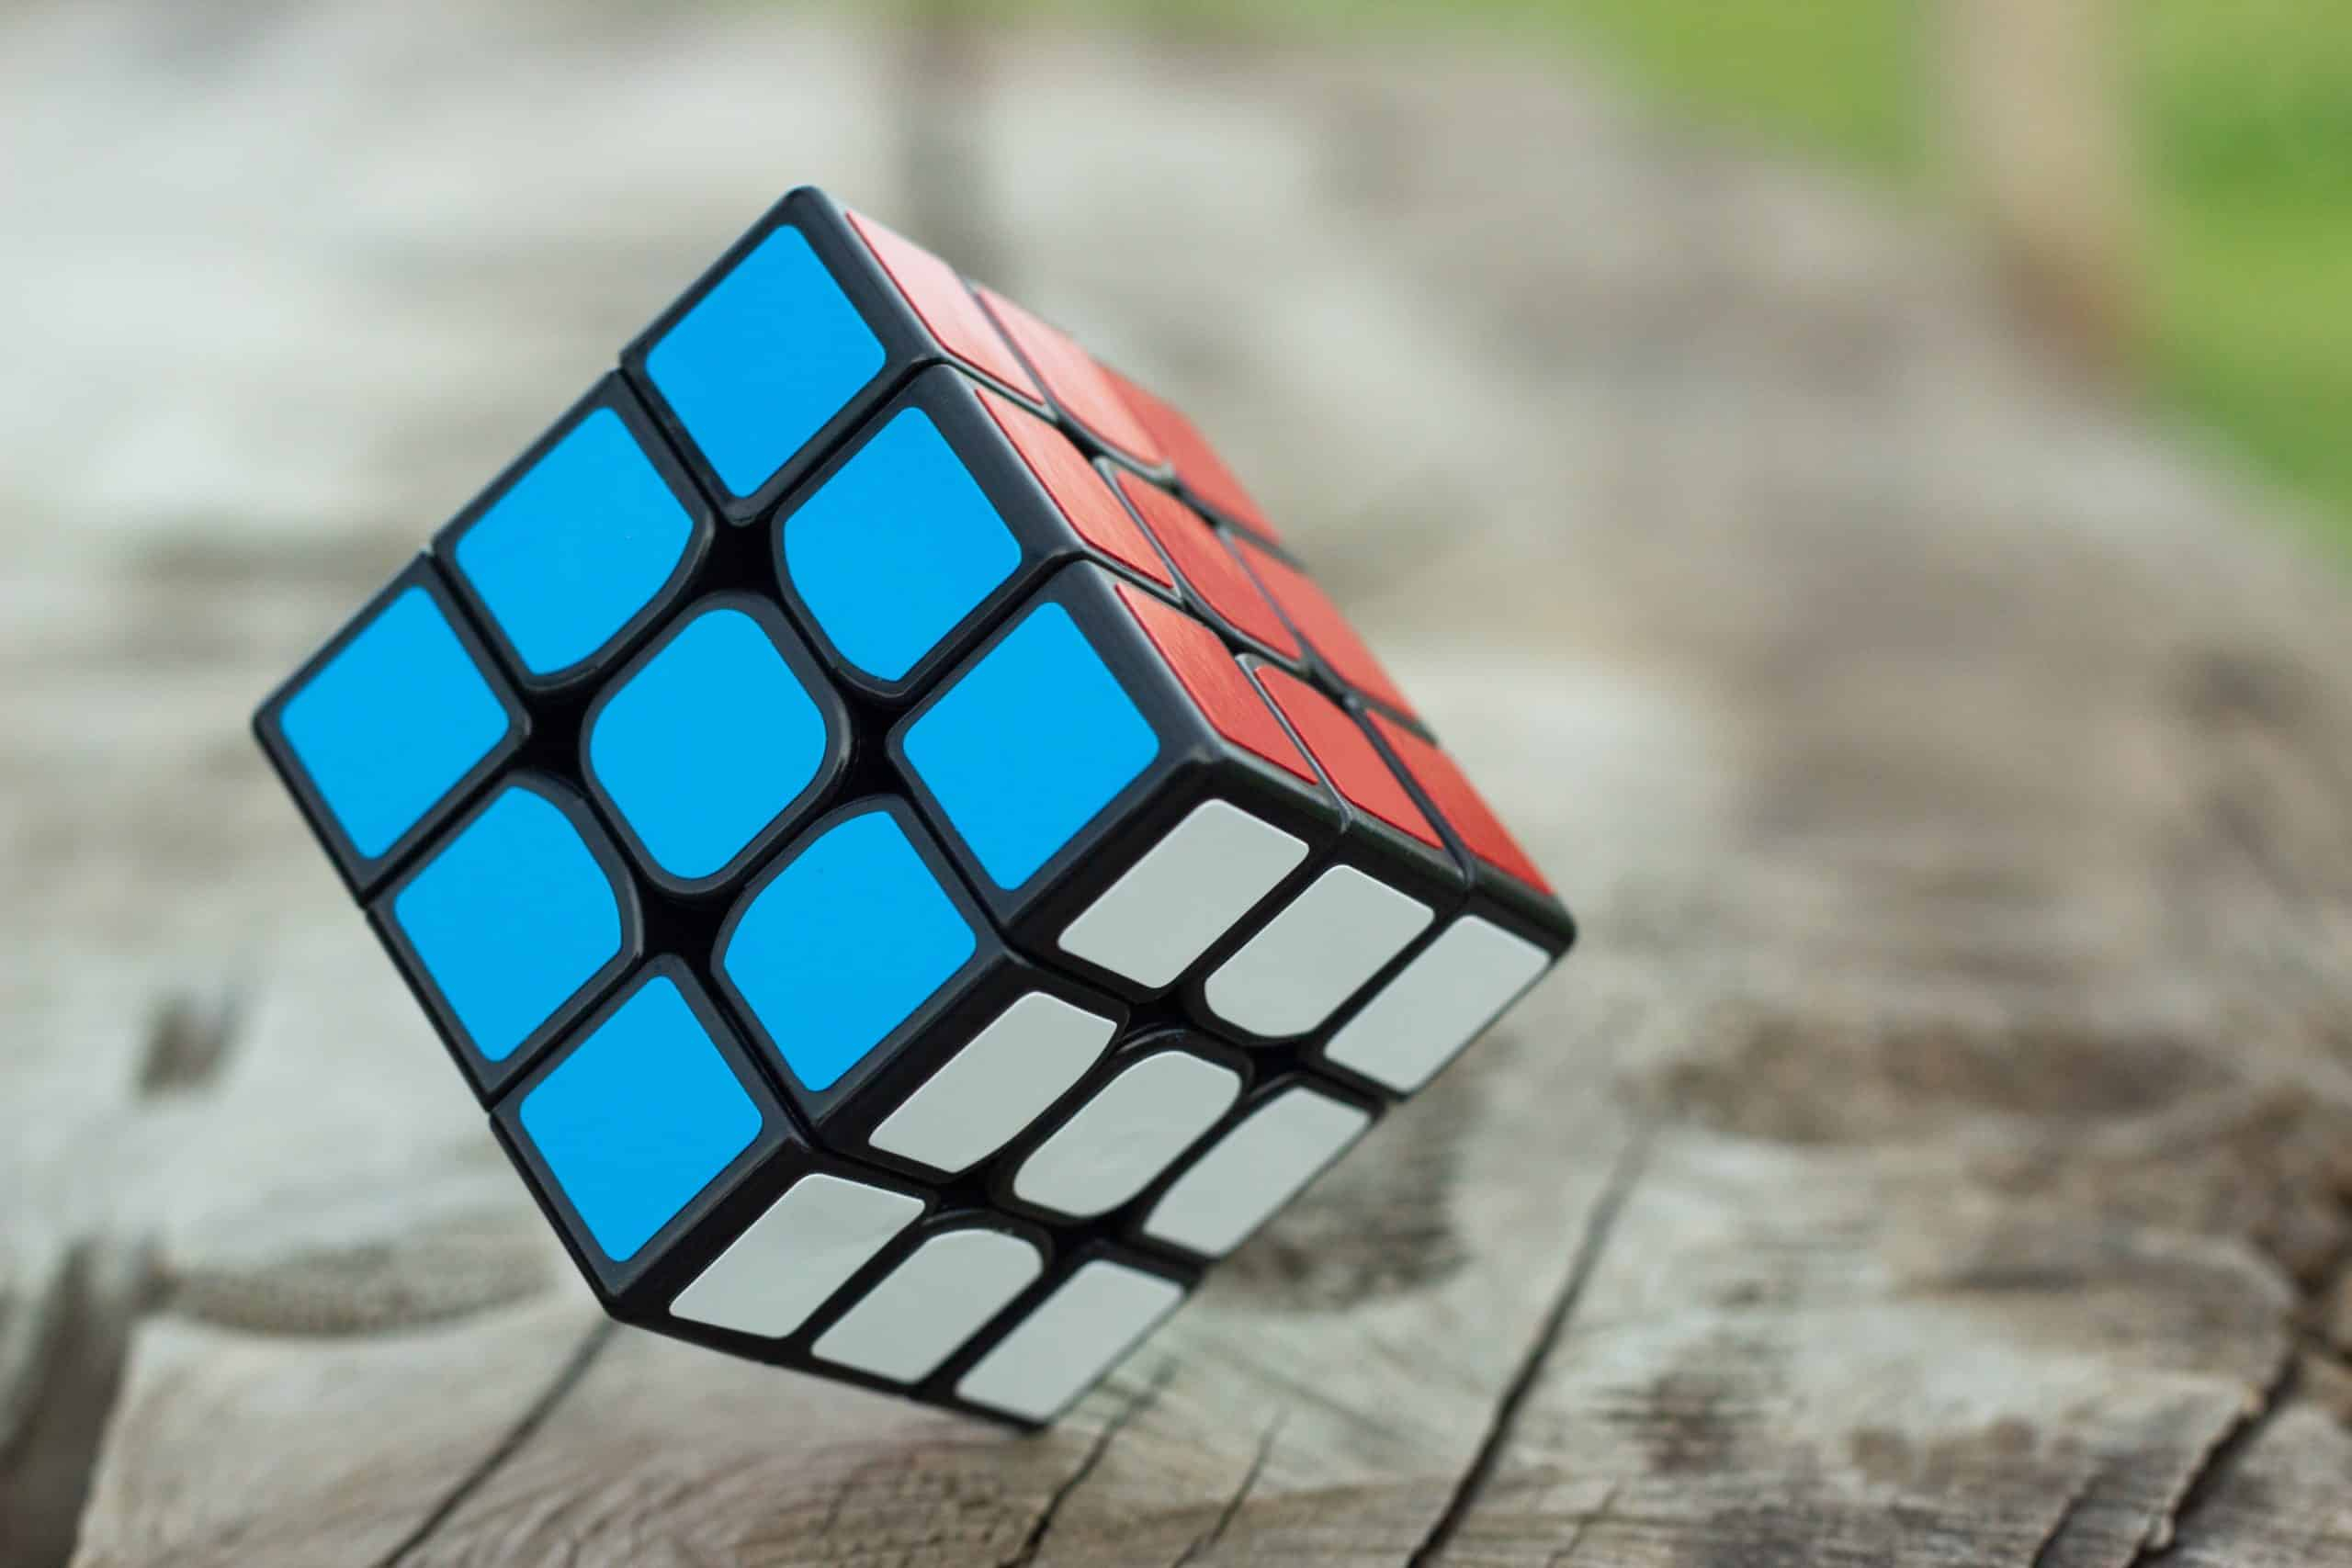 Rubic cubes puzzle for children